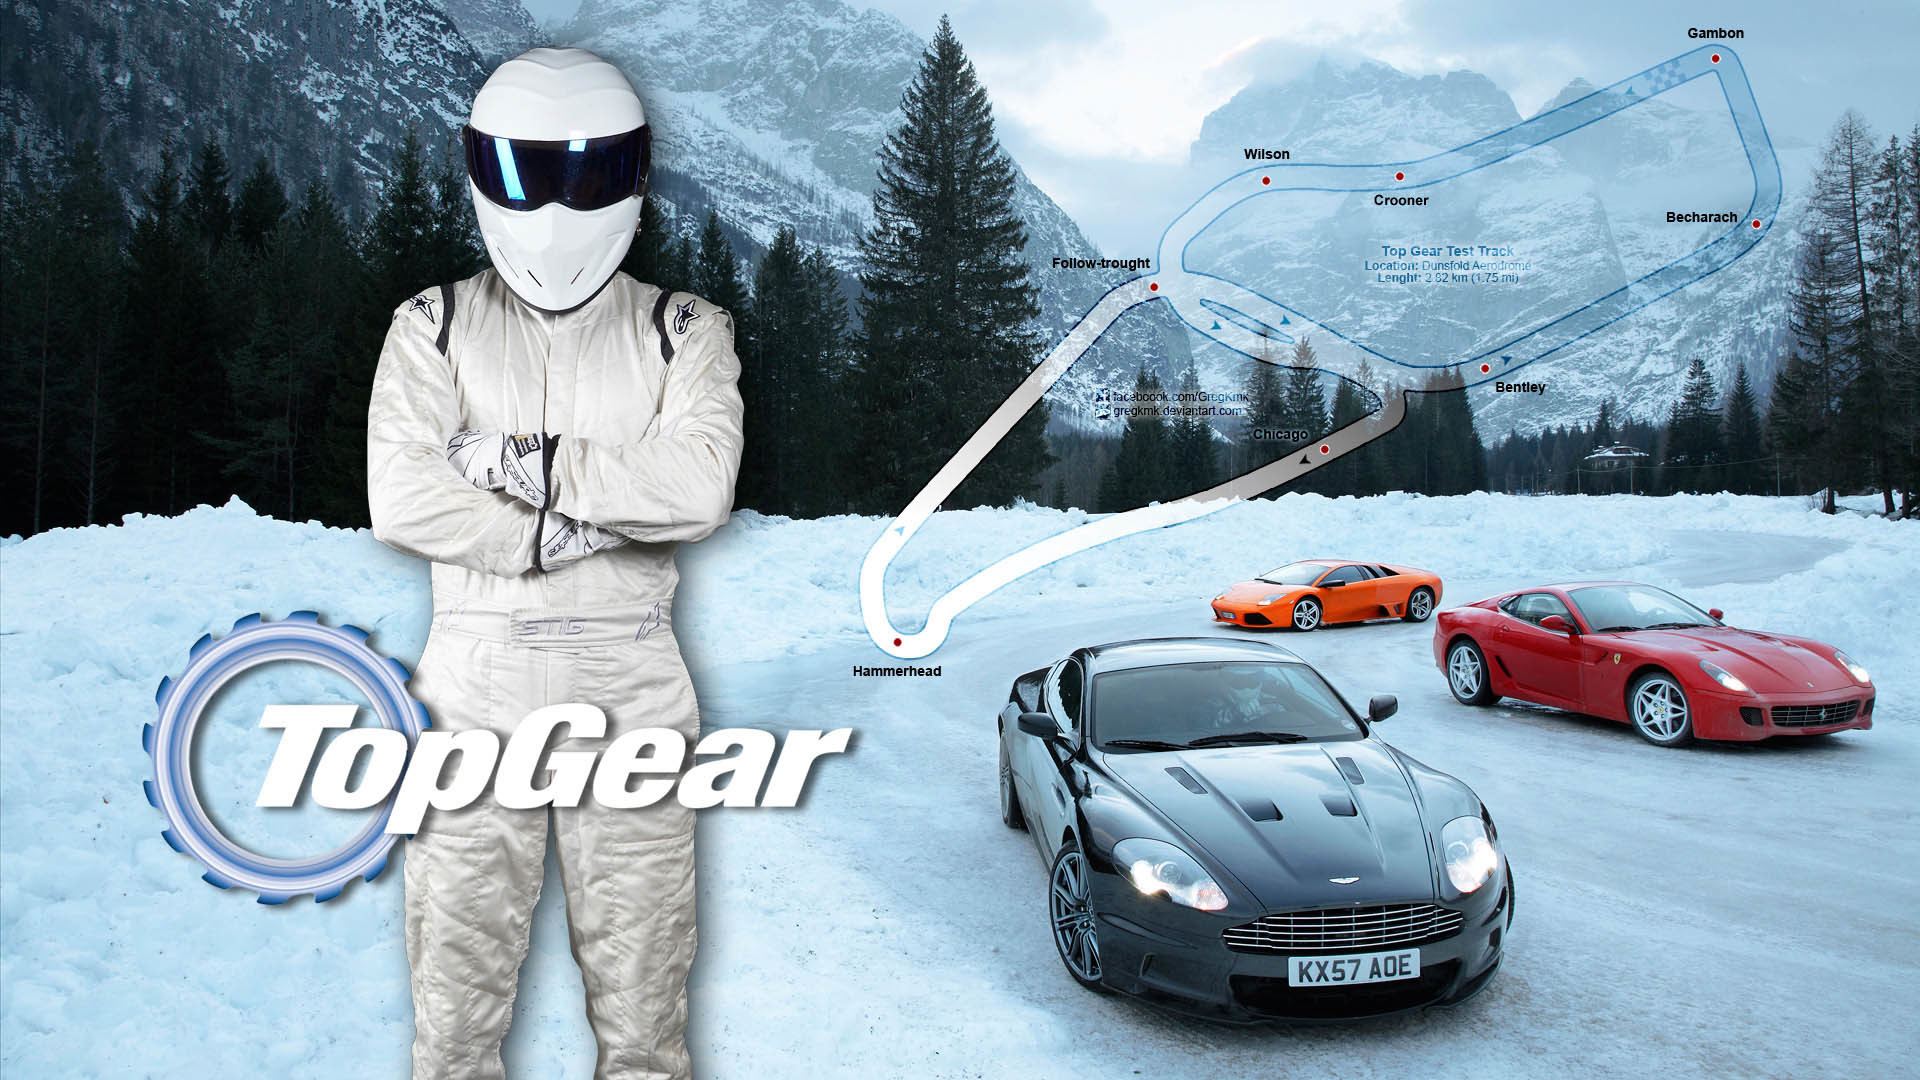 1920x1080 Stig Supercars Snow Top Gear Wallpaper - Image #3550 -